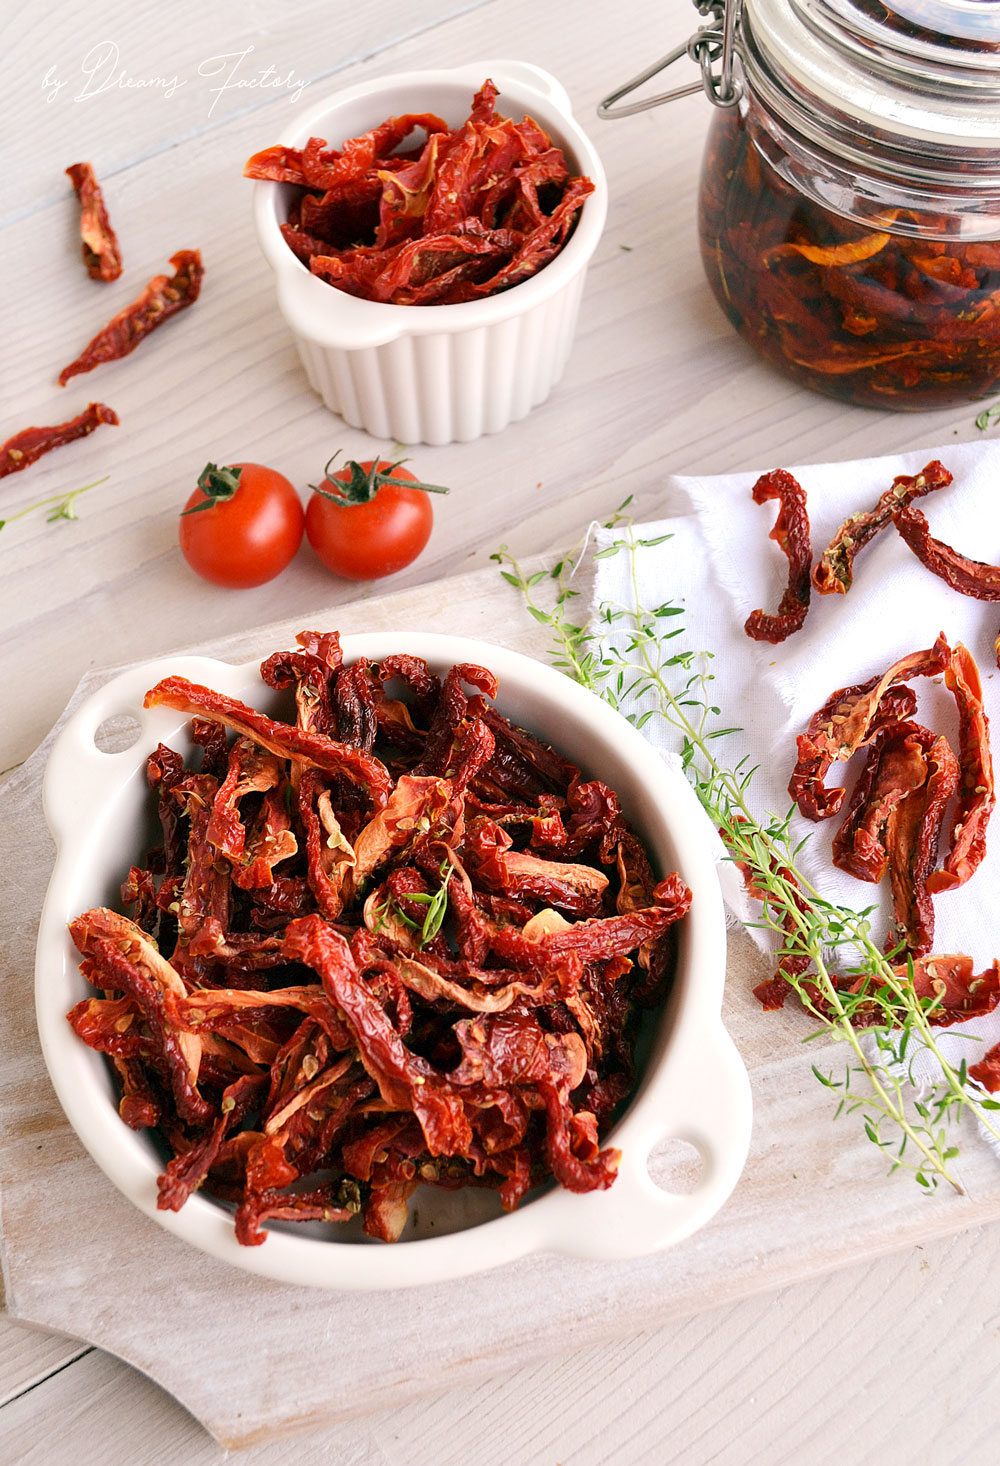 Make these healthy and insanely delicious sun-dried tomatoes with aromatic herbs following these simple steps! www.bydreamsfactory.com